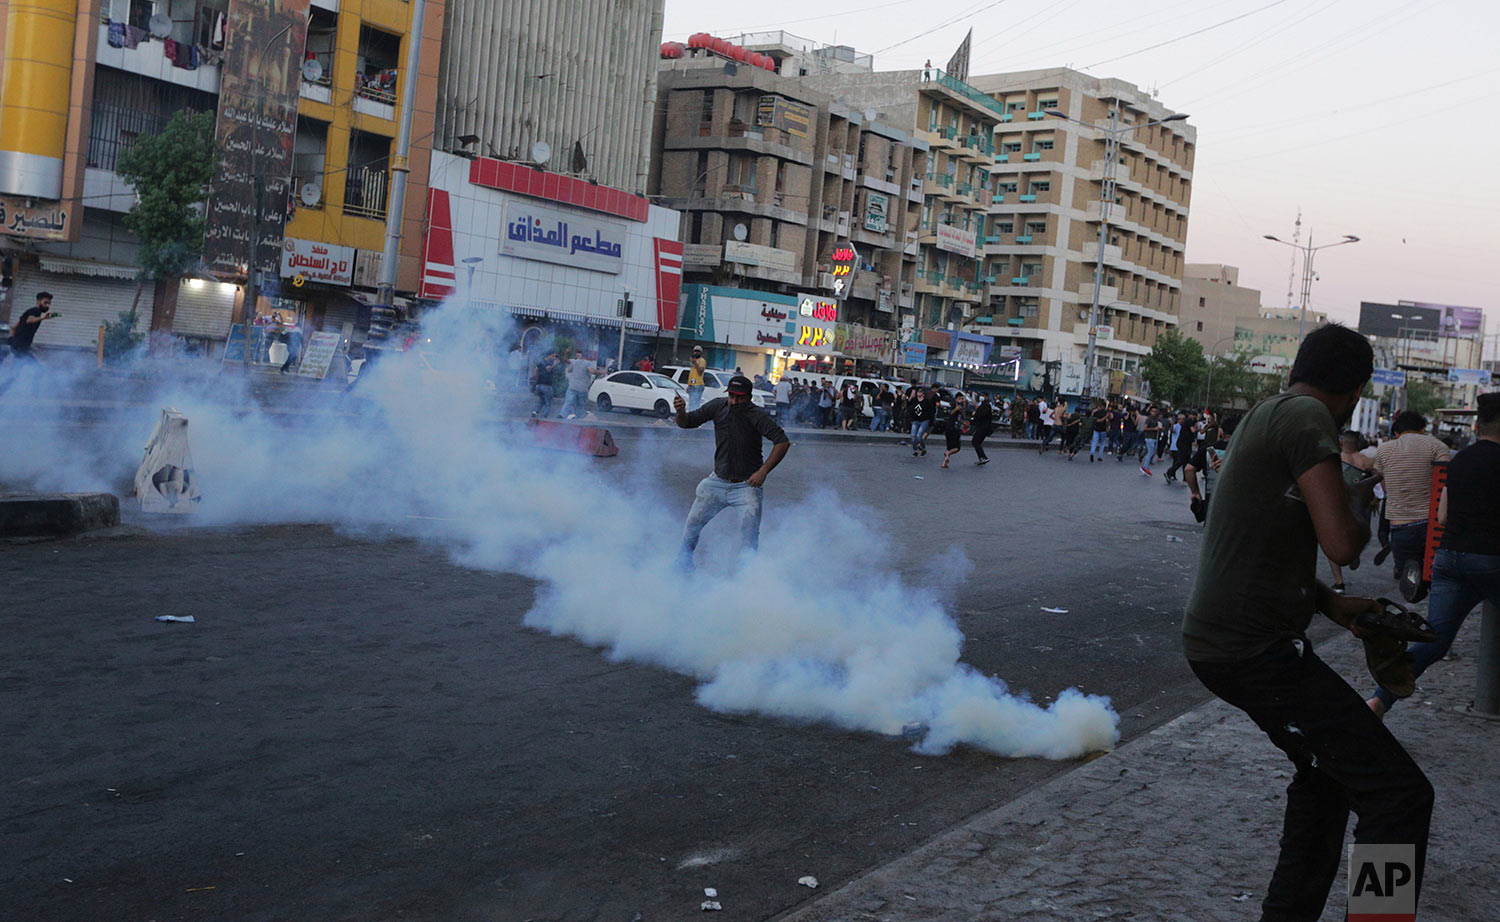 Iraq protesters demanding better public services and jobs run from tear gas fired by security forces, during a demonstration in Tahrir Square in central Baghdad, Iraq, Friday, July 20, 2018. (AP Photo/Hadi Mizban)